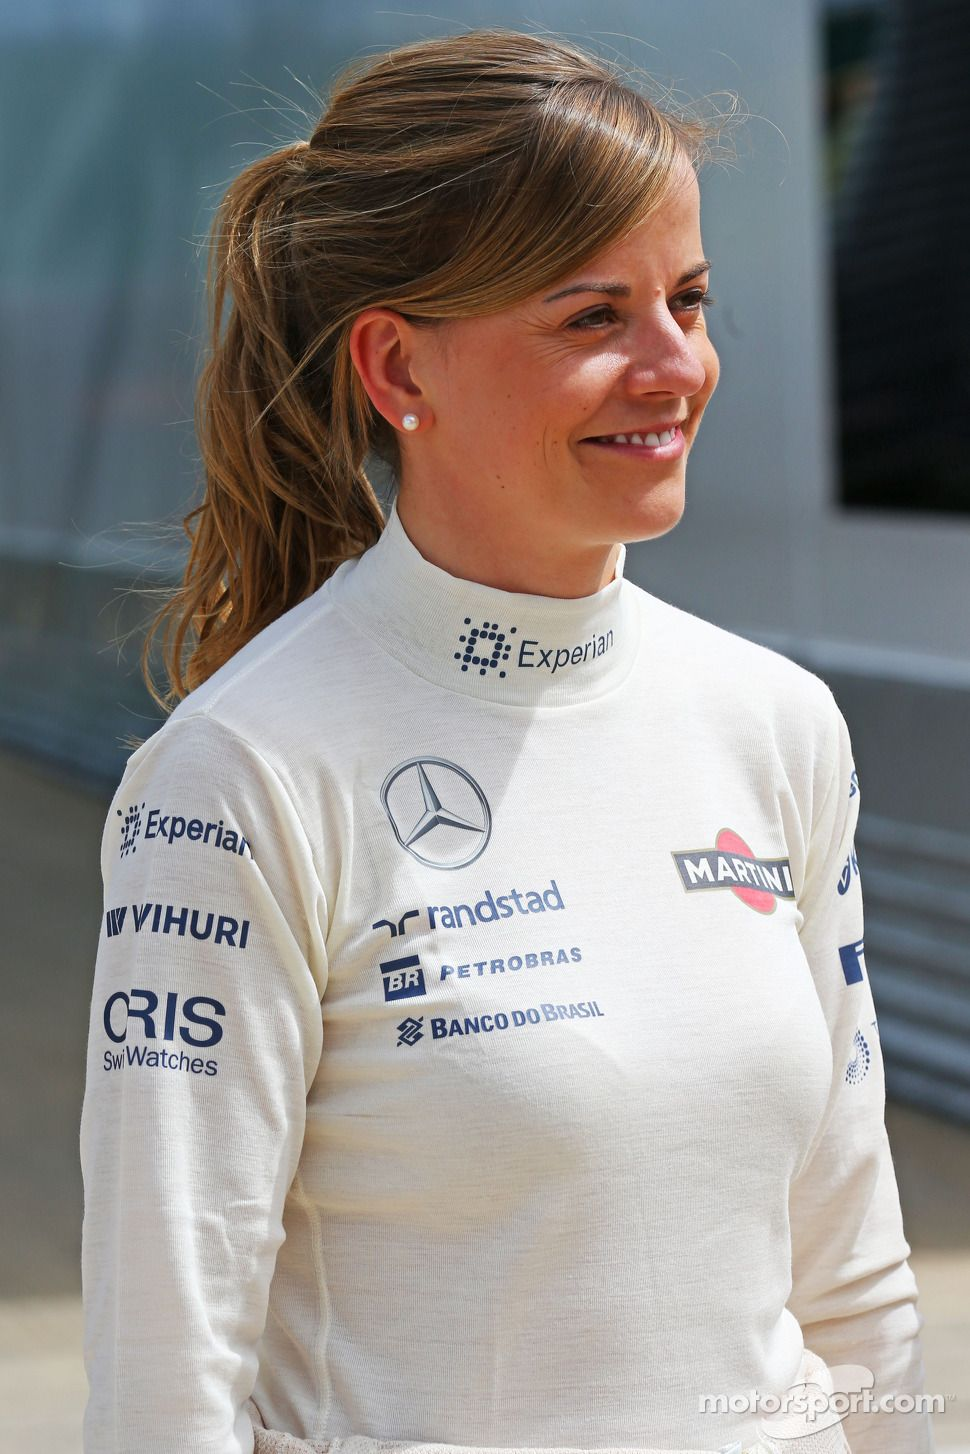 Cleavage Susie Wolff nudes (15 photos), Sexy, Sideboobs, Twitter, butt 2019